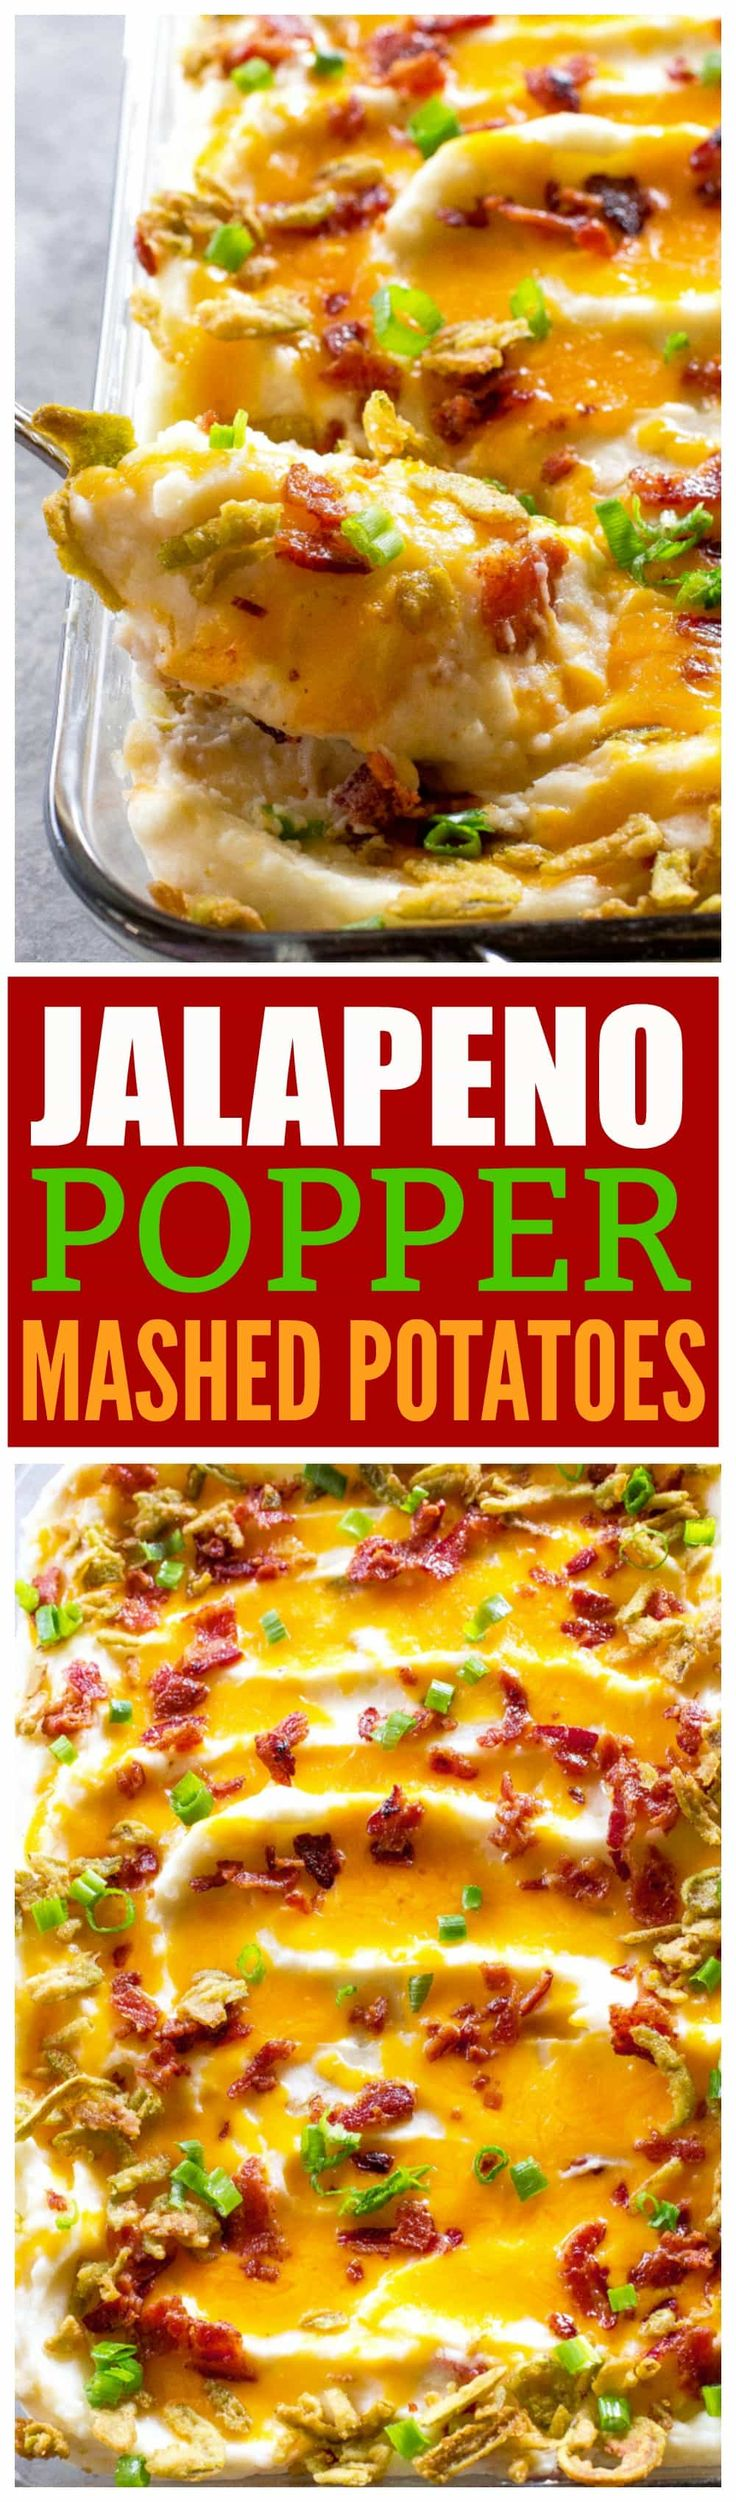 These Jalapeno Popper Mashed Potatoes are creamy mashed potatoes loaded with cheese, bacon, and crispy jalapenos. #ad These will take your Thanksgiving (or Friendsgiving) to the next level. the-girl-who-ate-everything.com